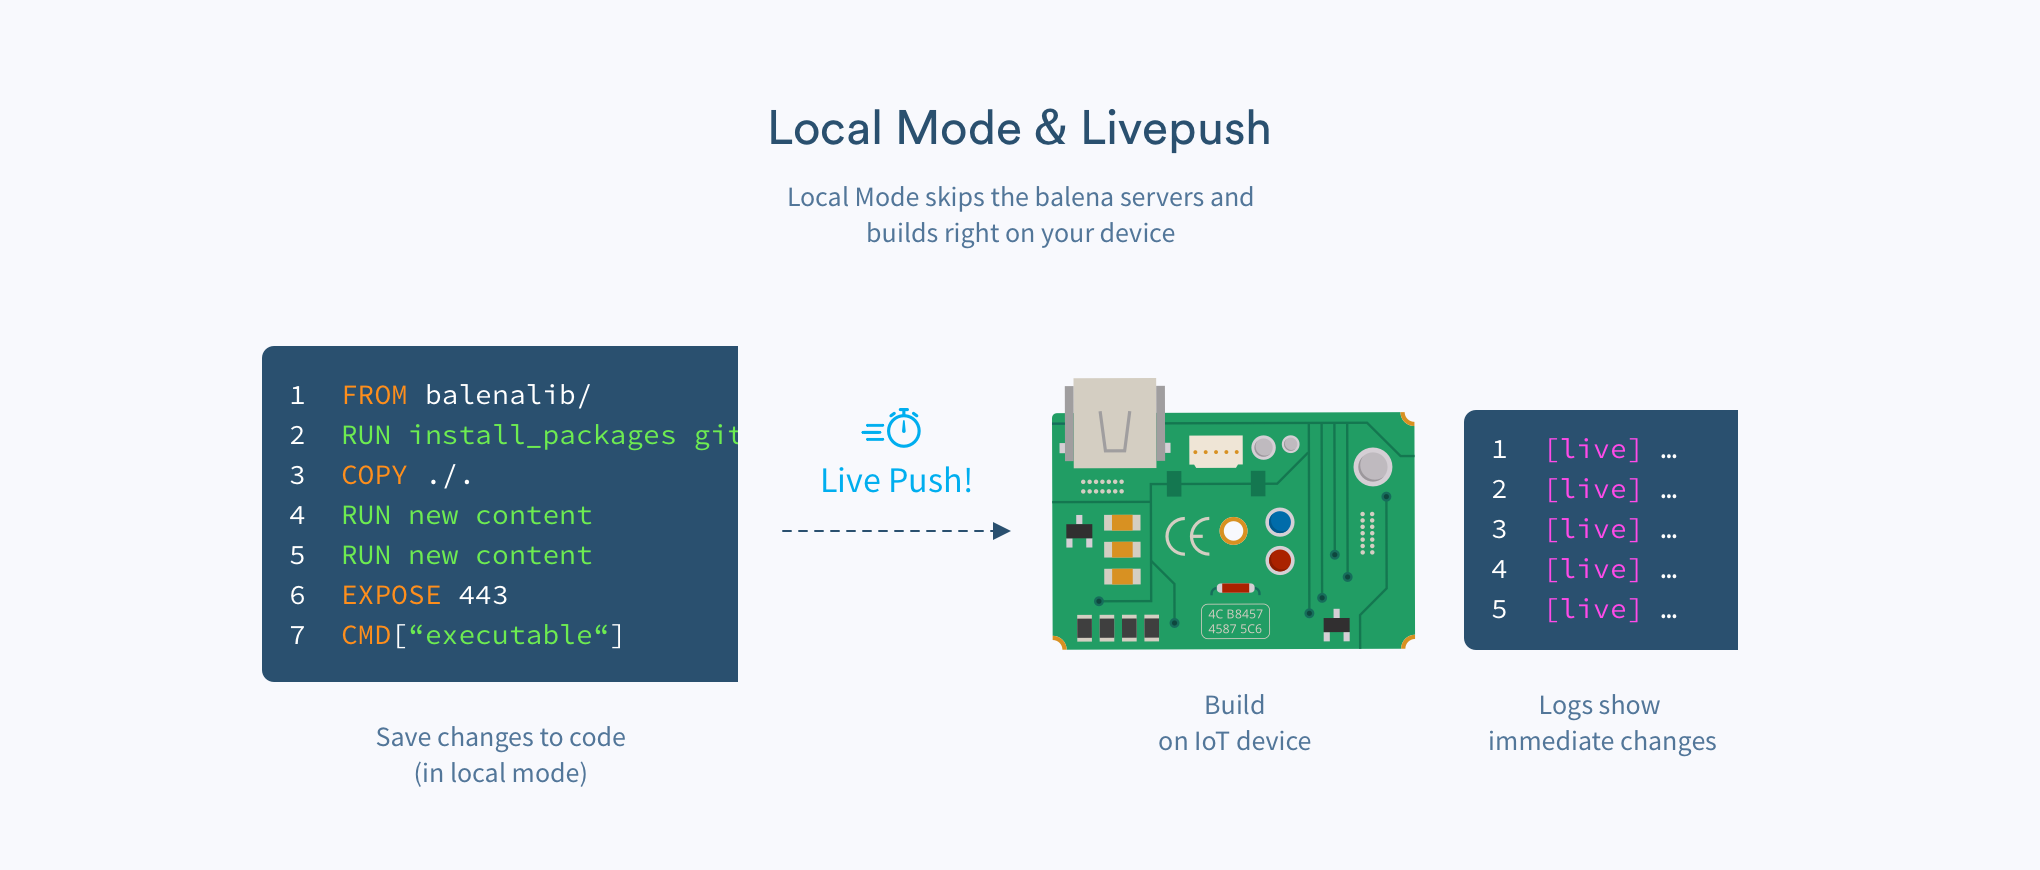 Here's a high-level look at how livepush works